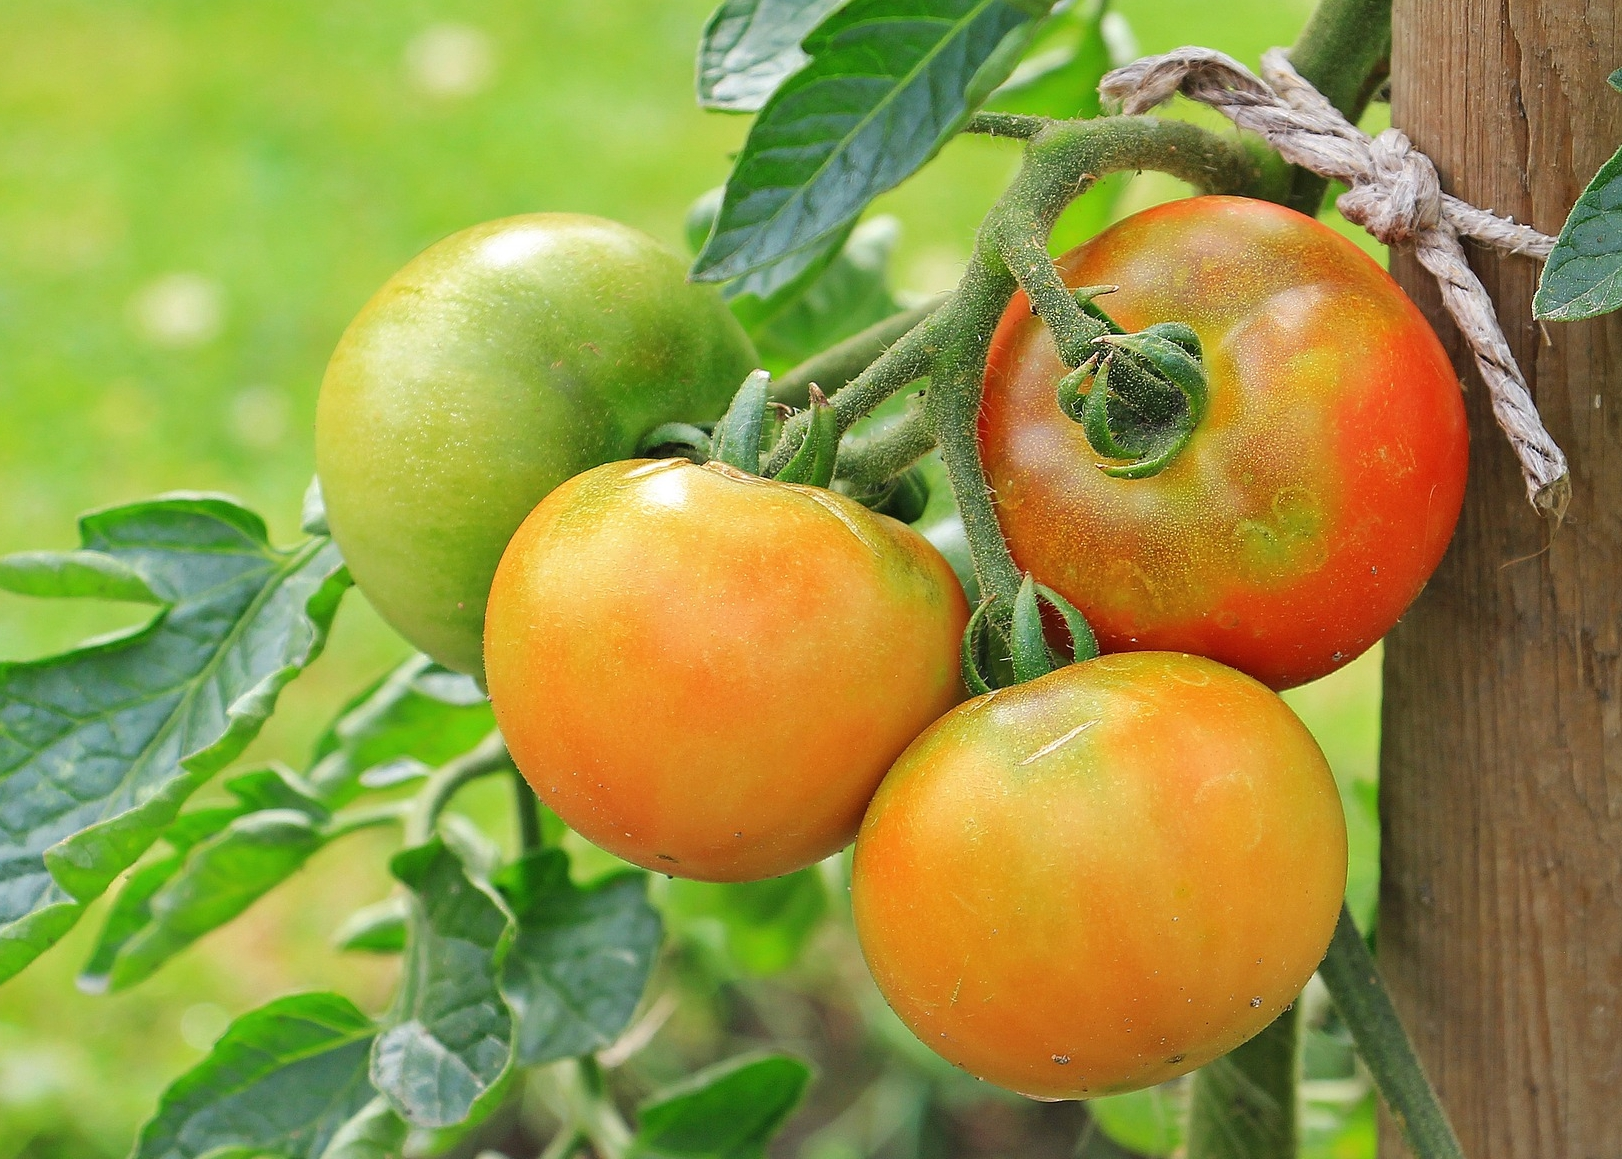 Tomatoes Planting Growing And Harvesting Tomatoes The